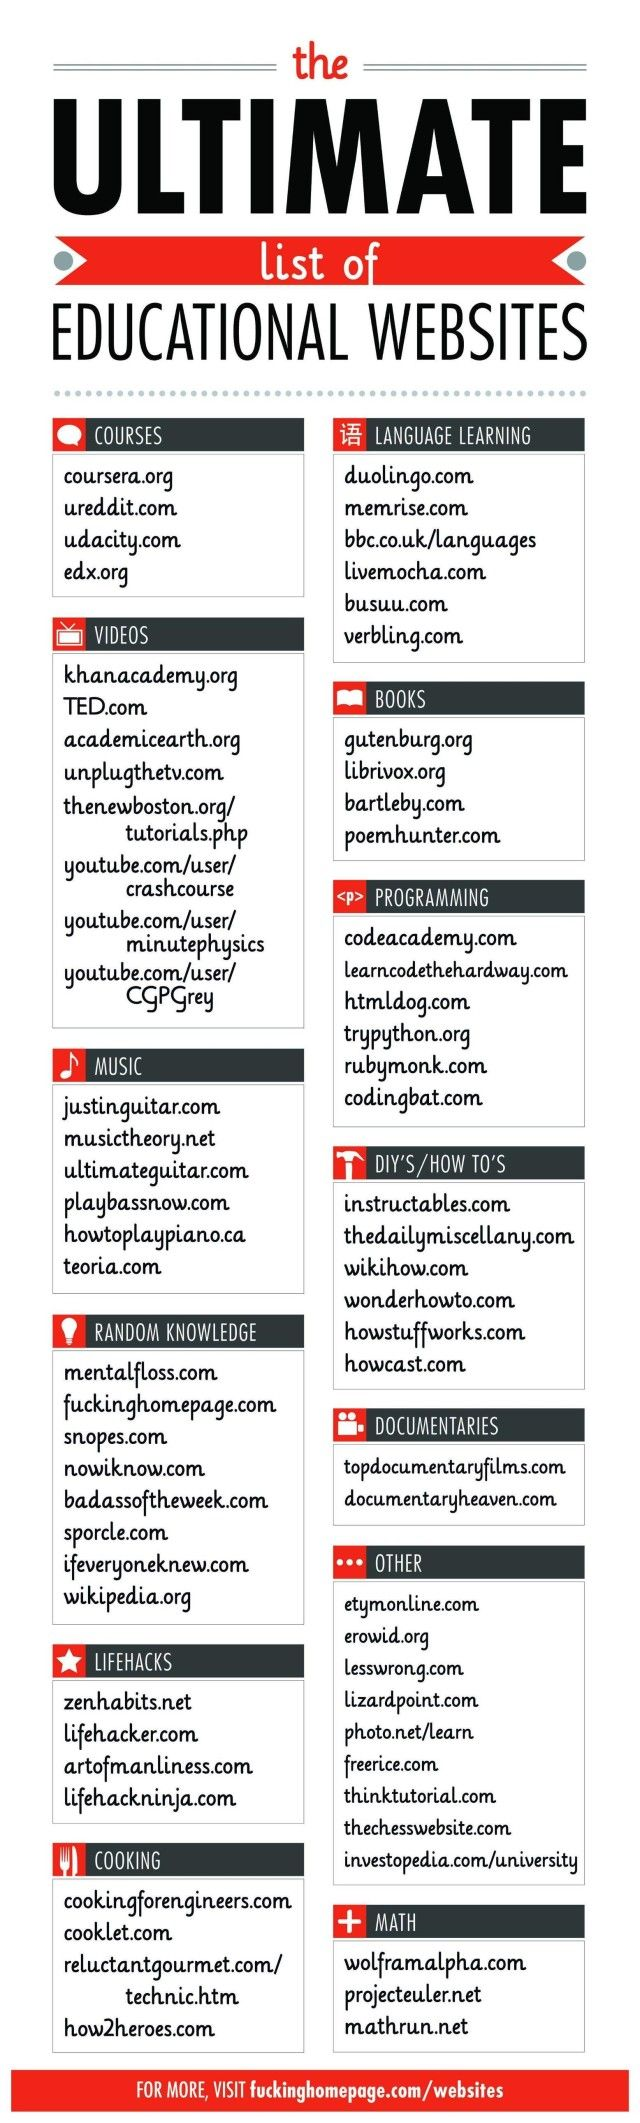 Ultimate list of useful websites.